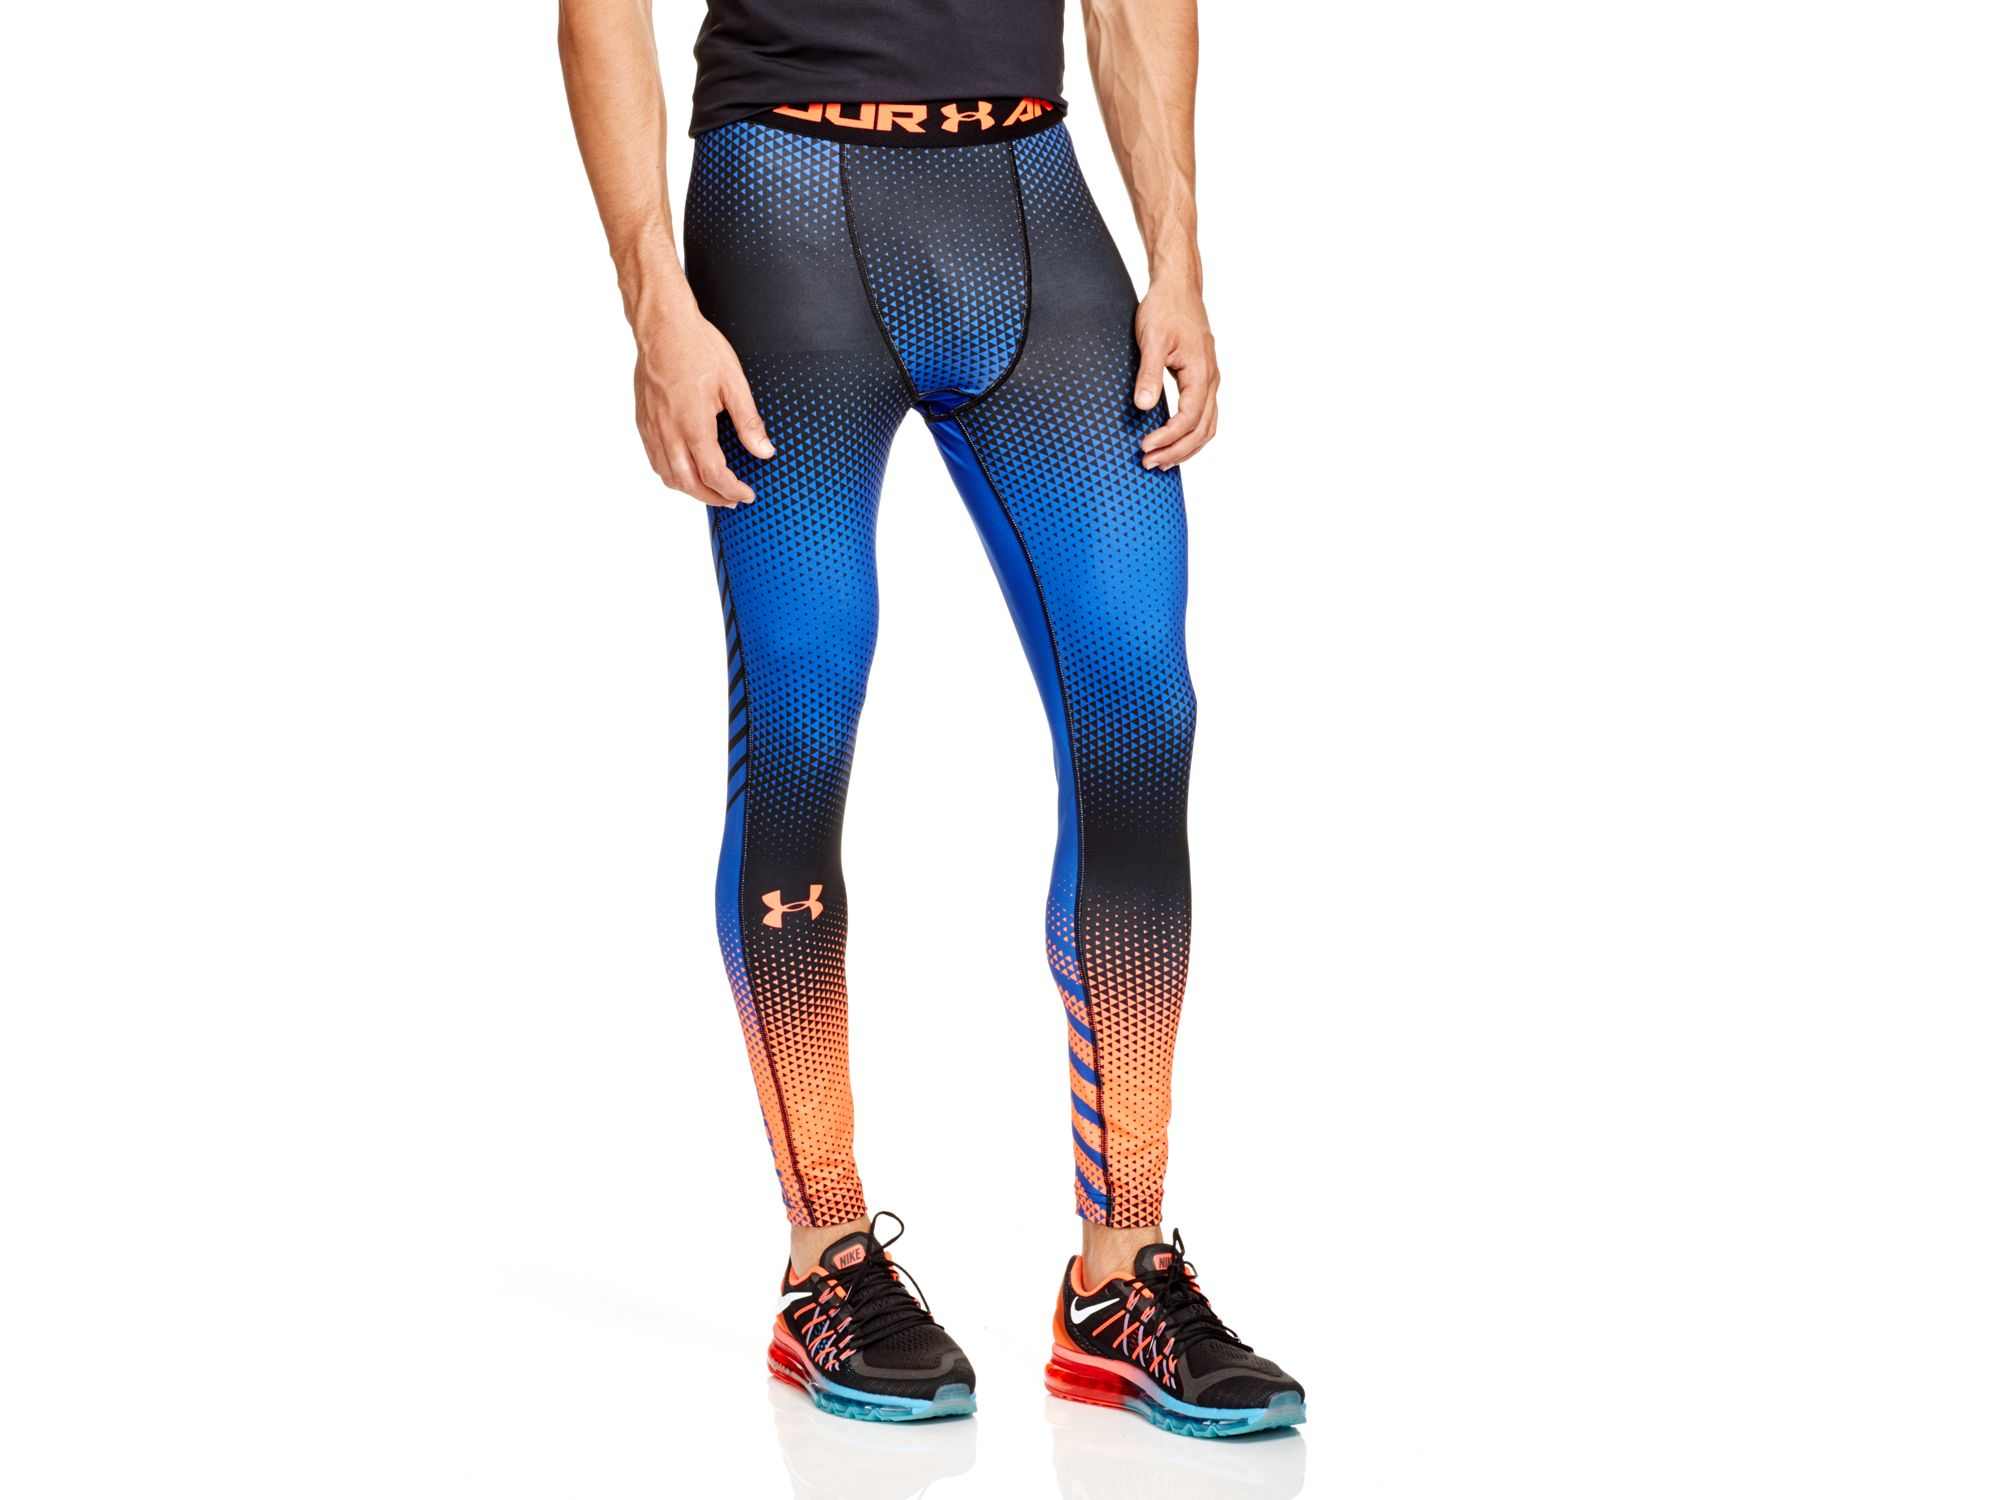 Lyst - Under Armour Exo Compression Leggings in Black